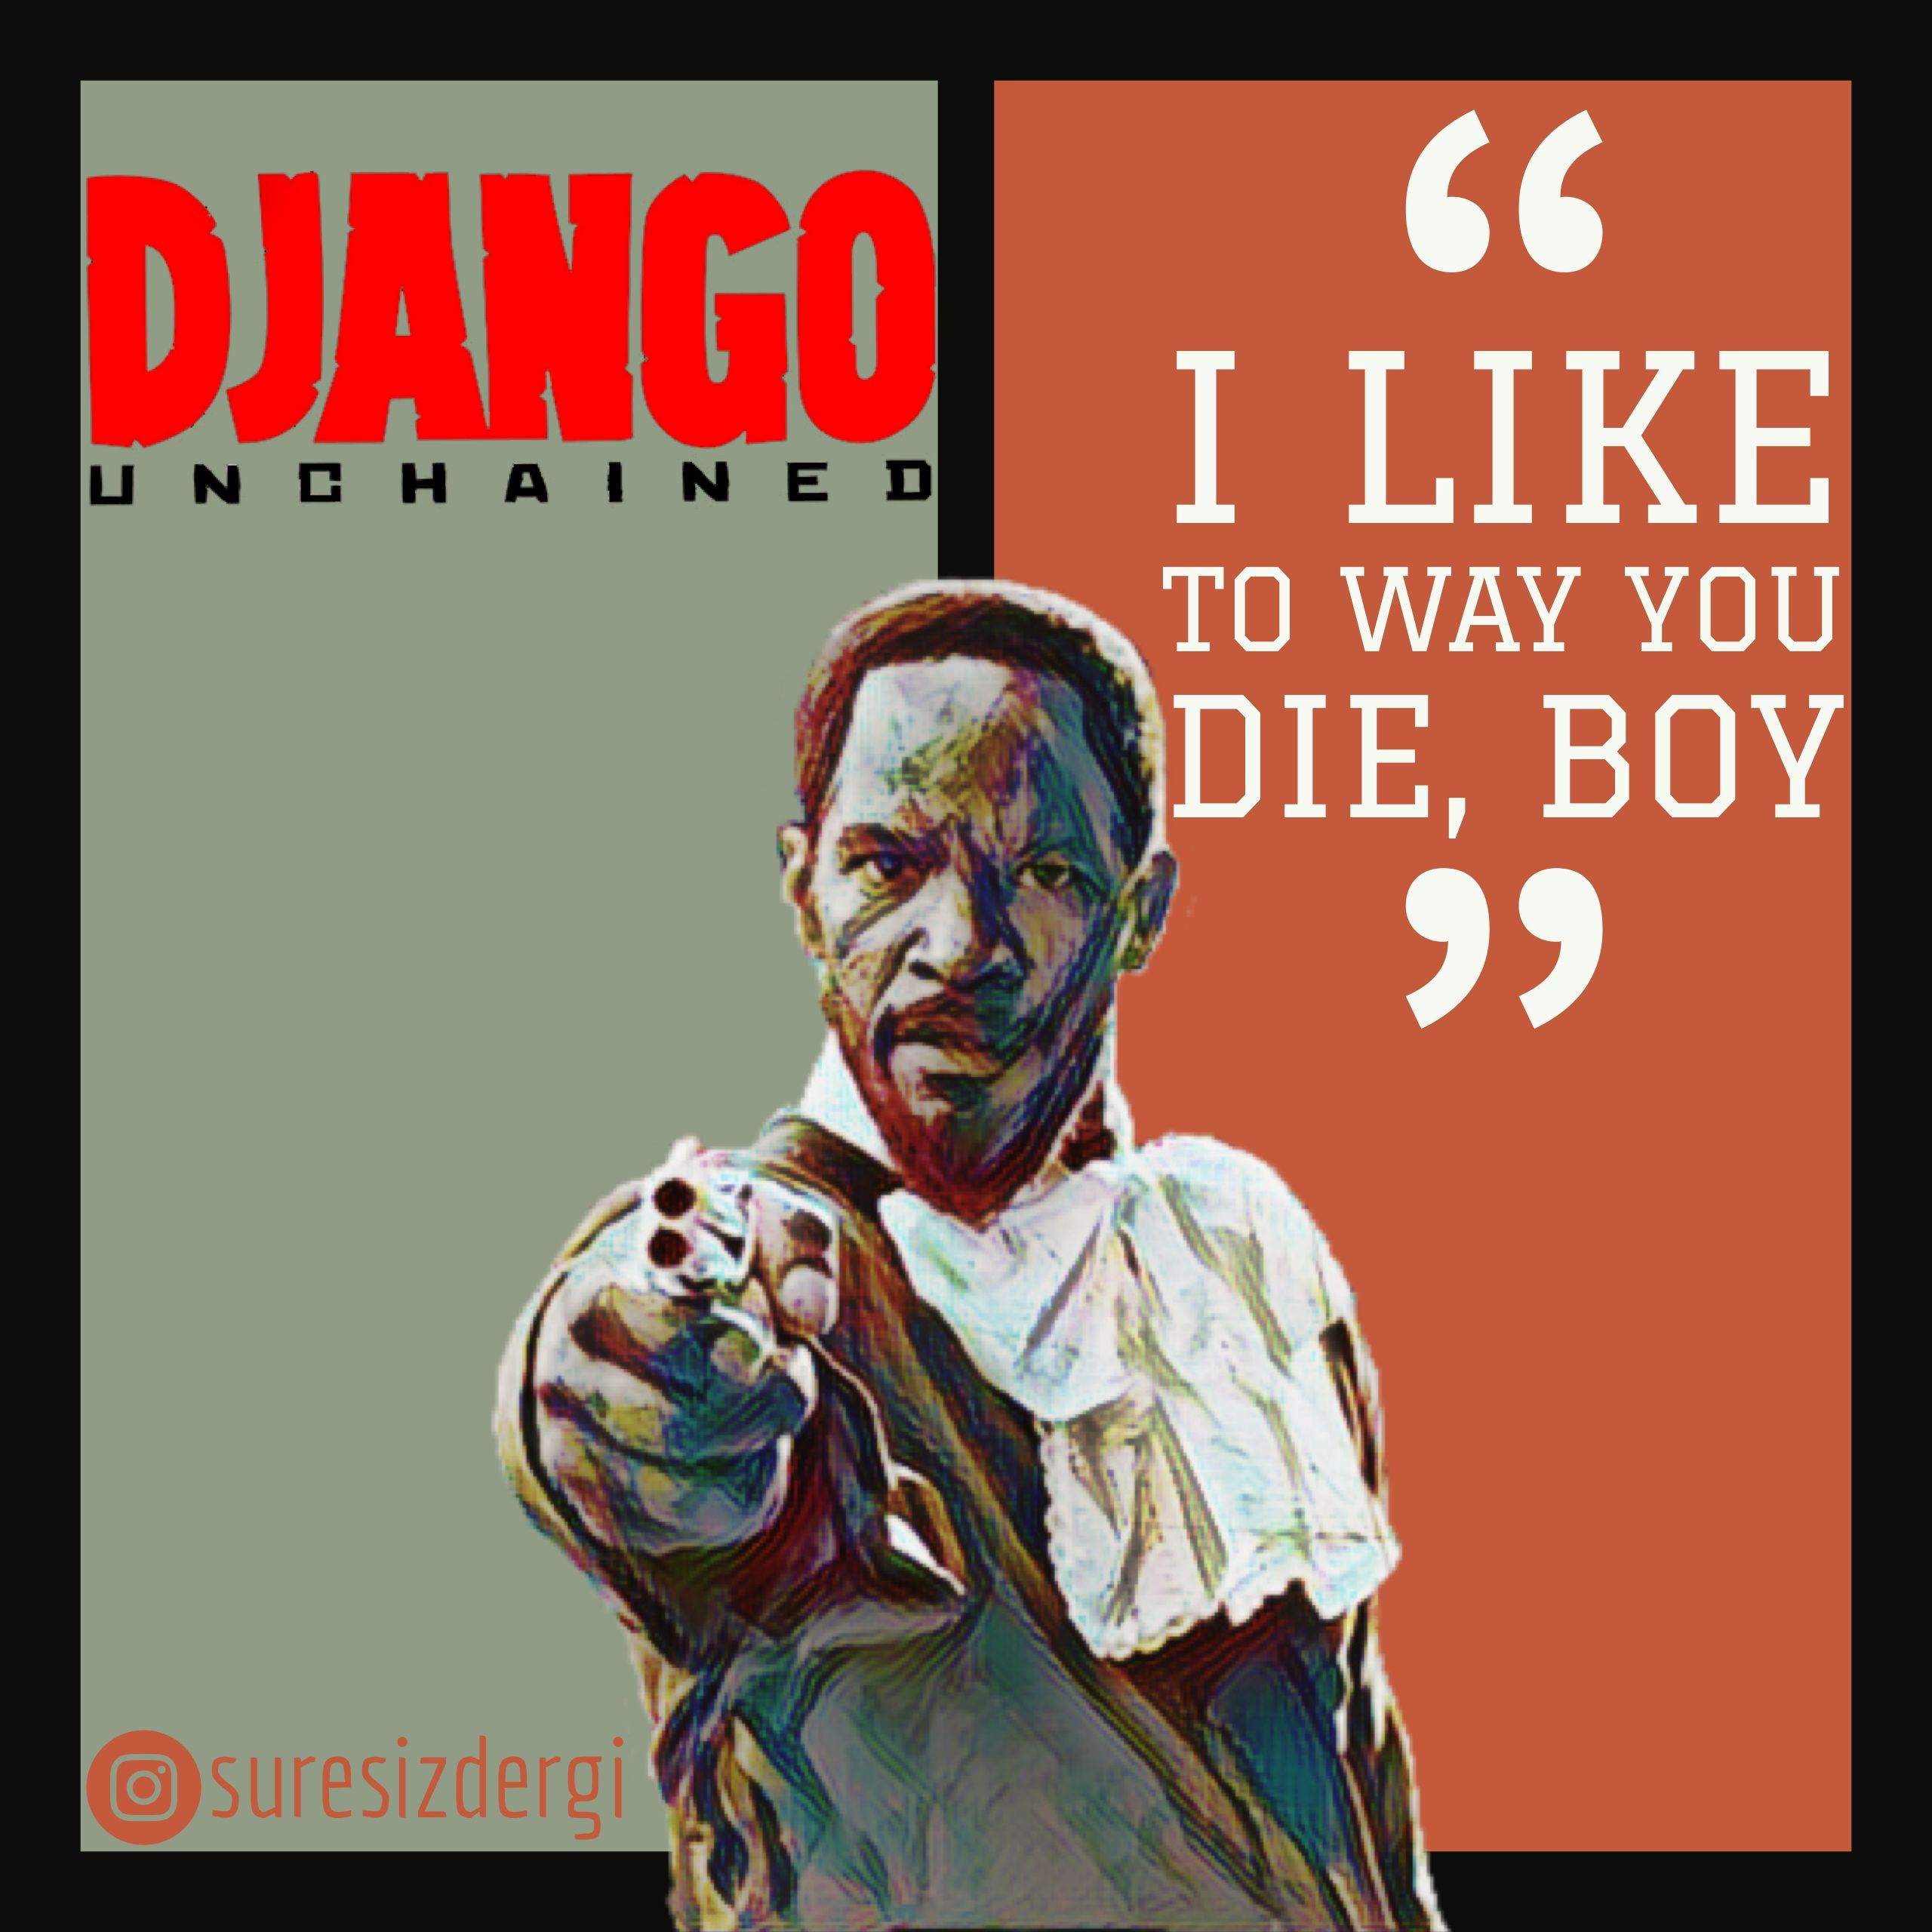 Django Unchained - I Like to Way You Die, Boy! #djangounchained